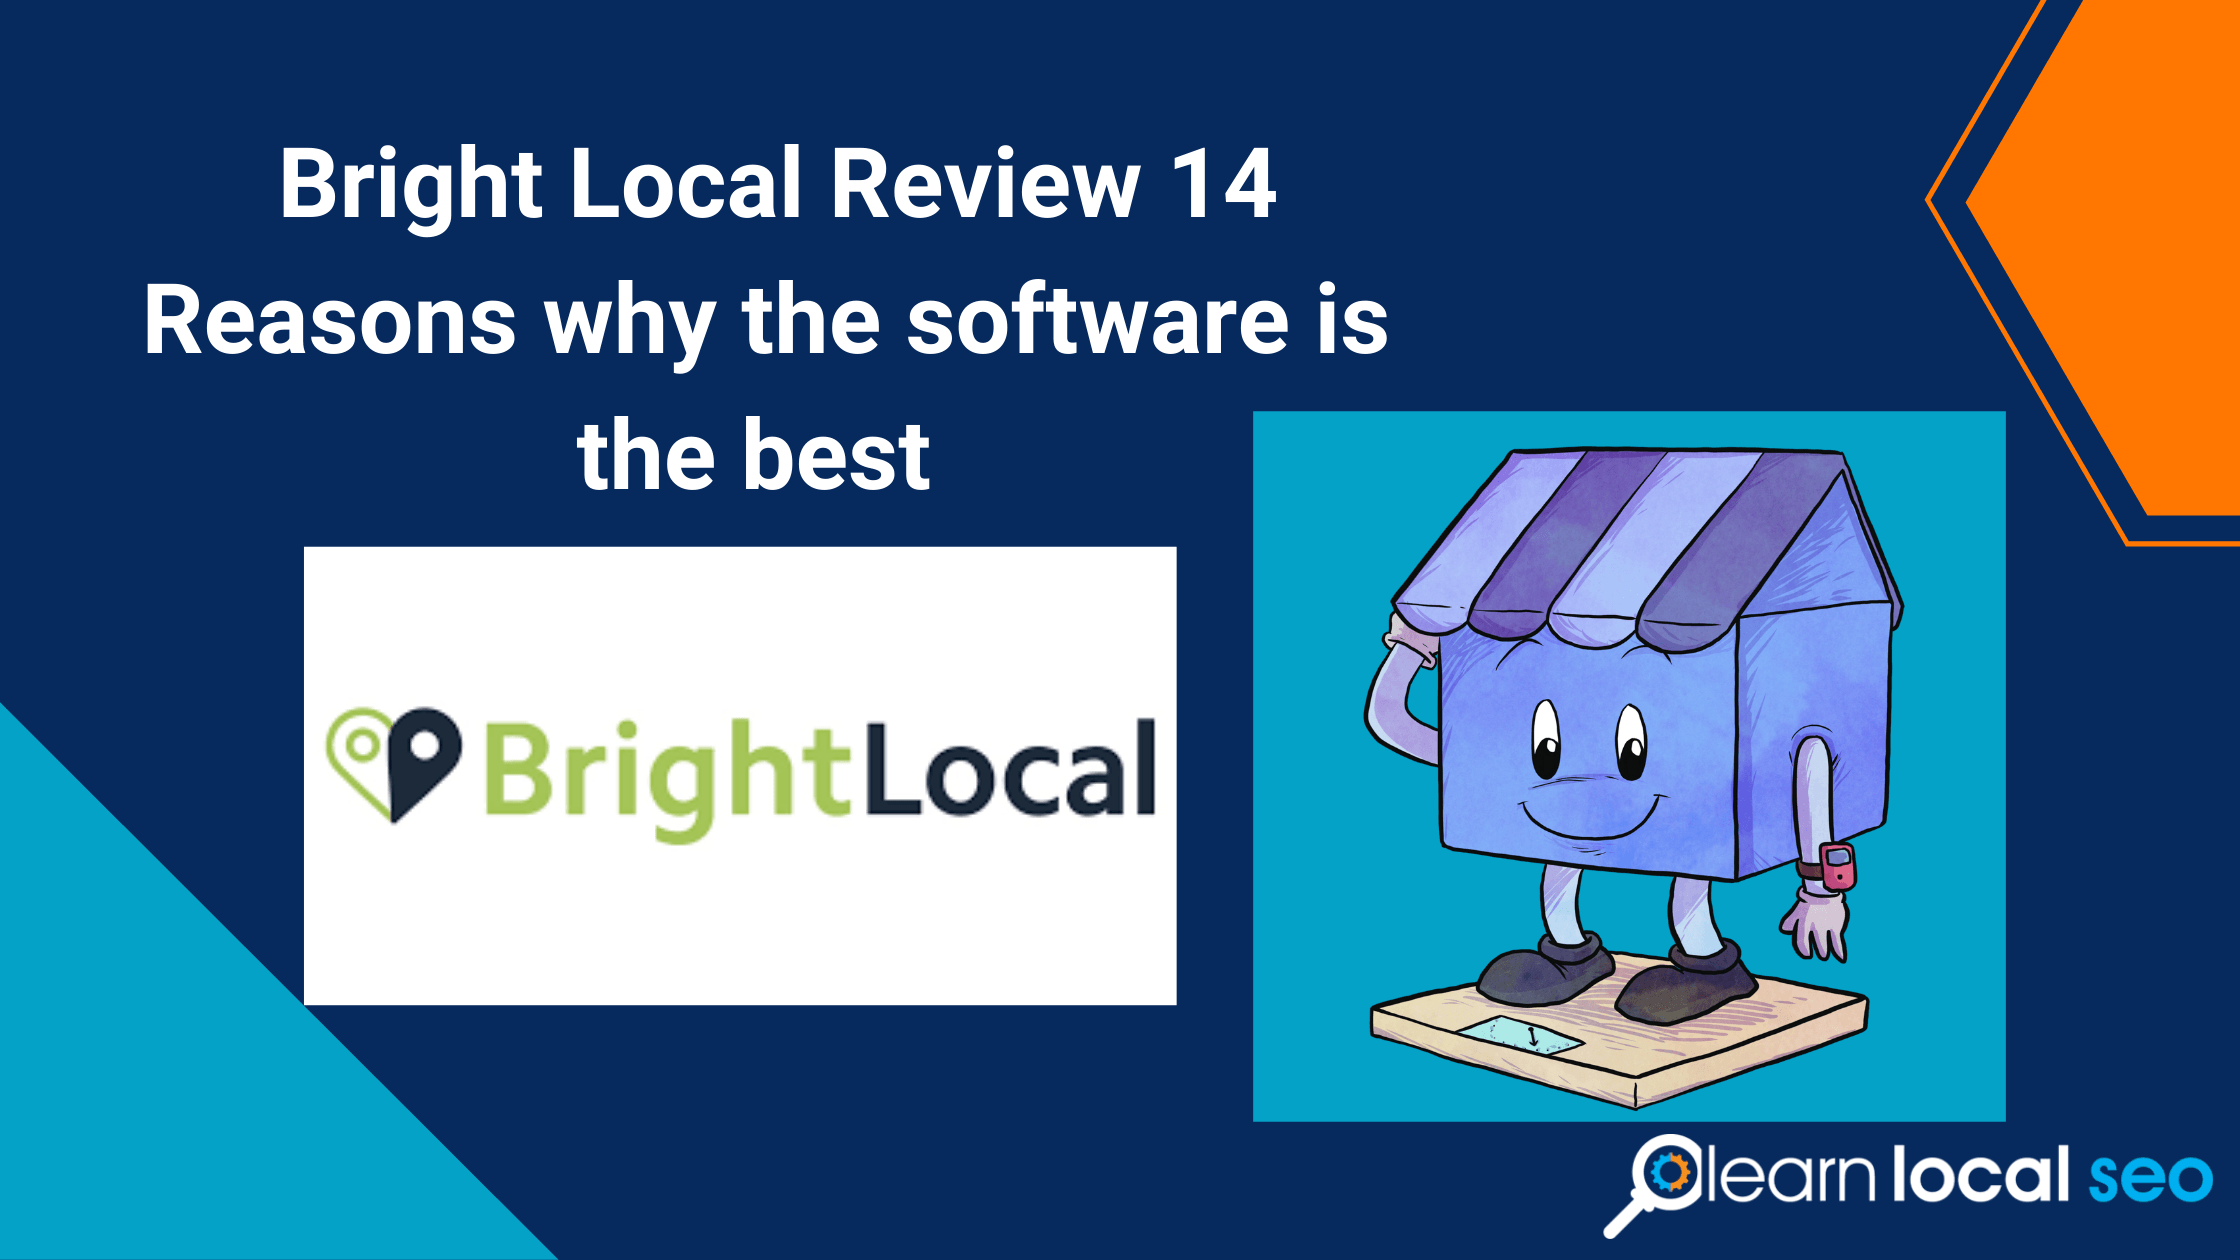 Bright local review